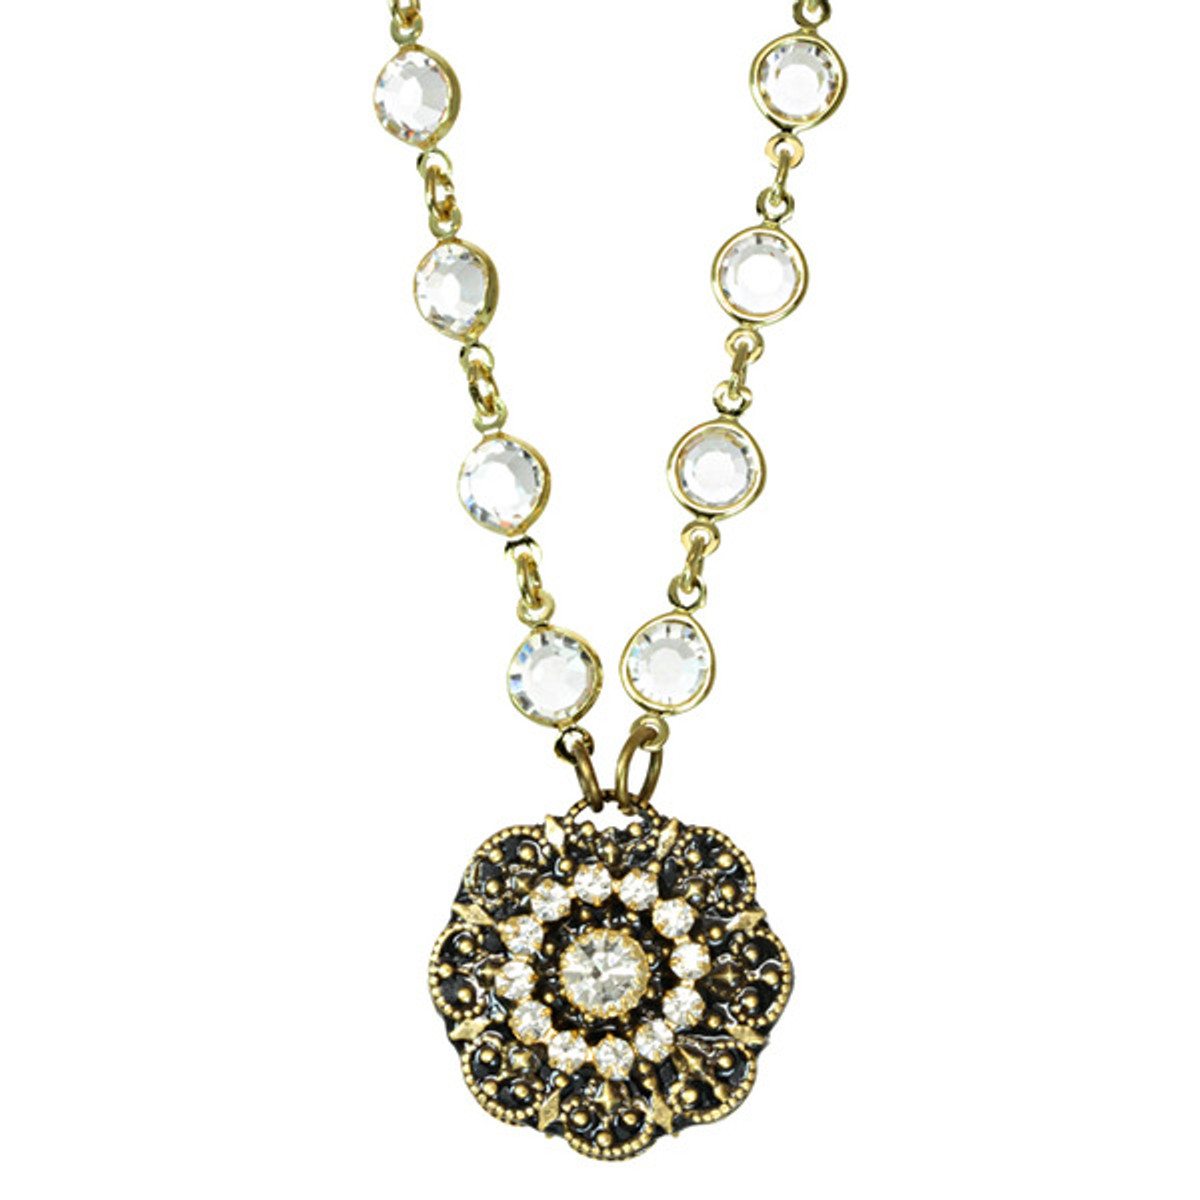 Michal Golan Jewelry Crysal Chain Necklace